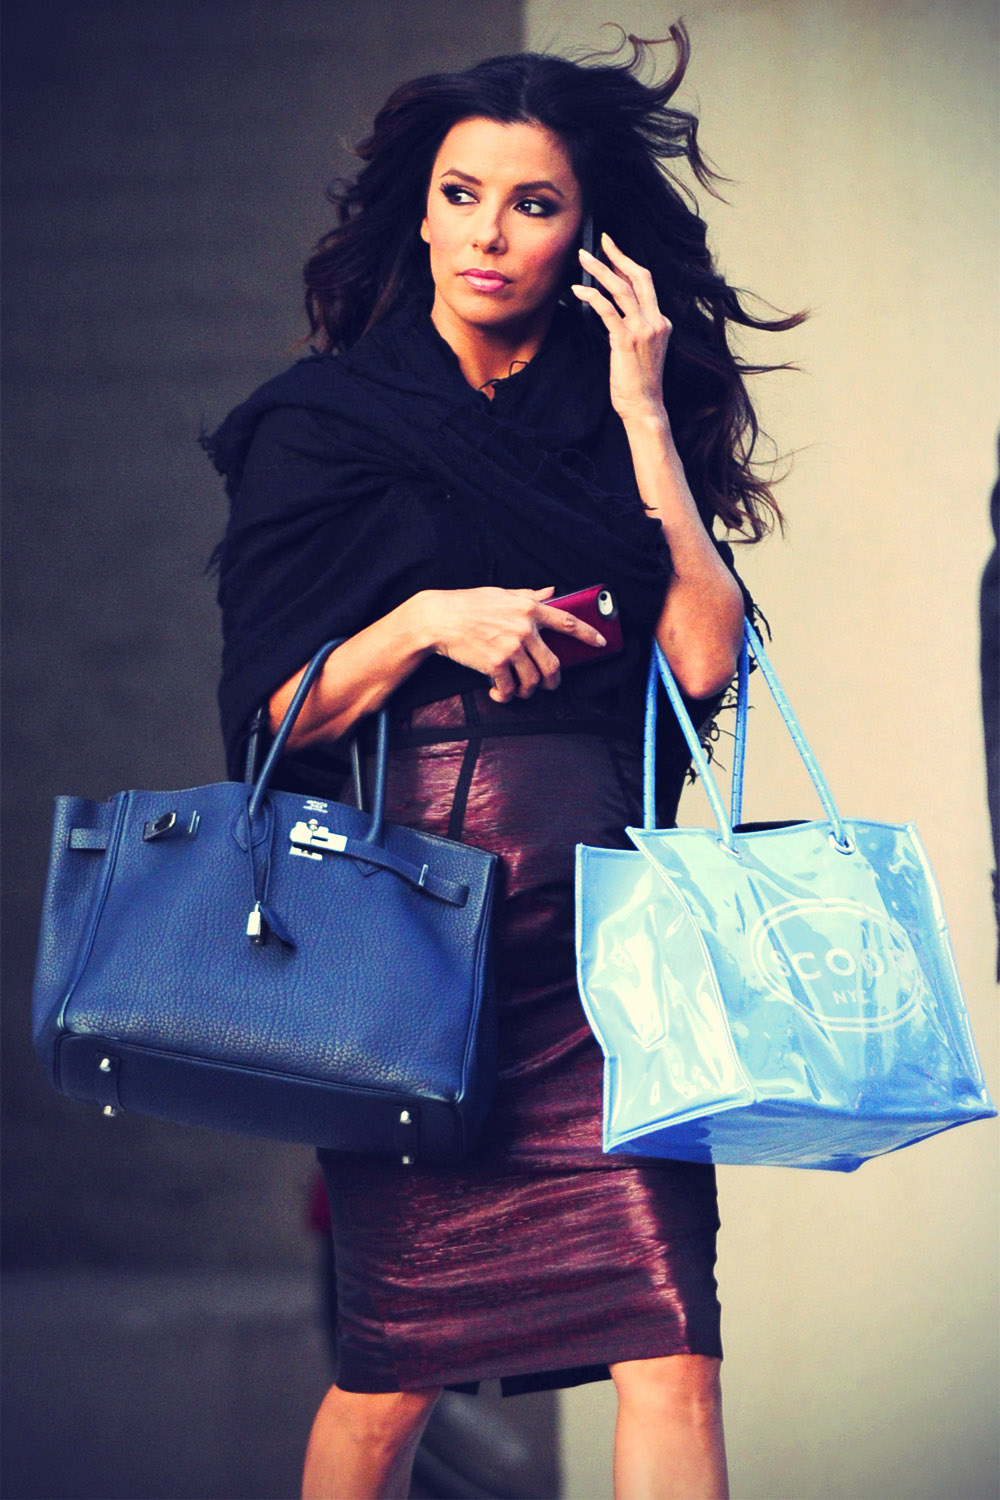 Eva Longoria shopping in New York City